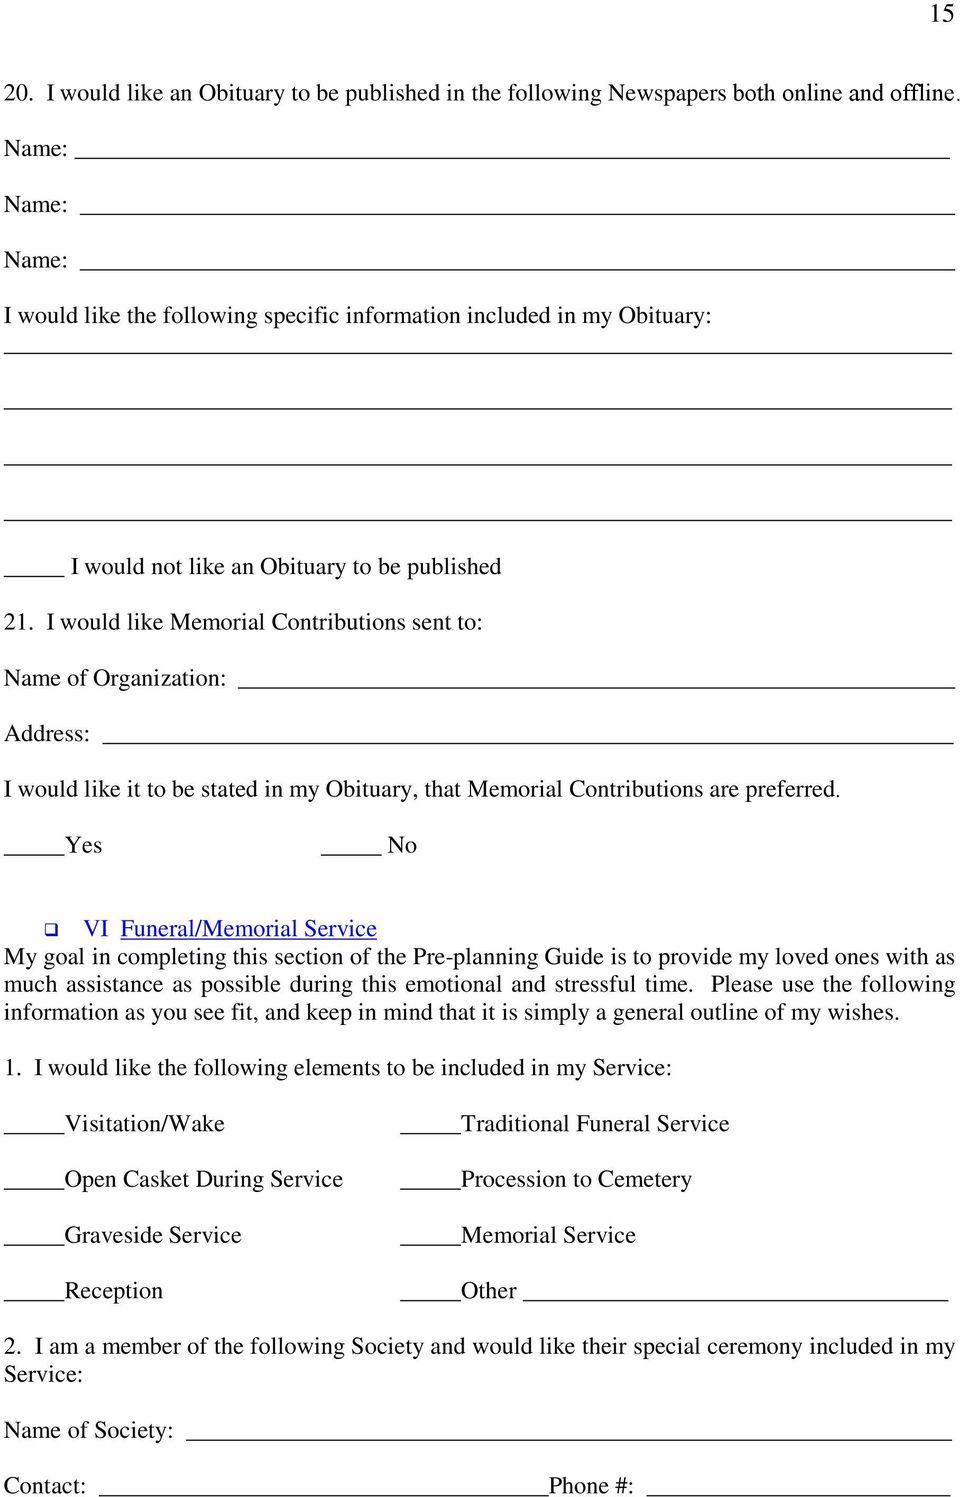 I would like Memorial Contributions sent to: Name of Organization: I would like it to be stated in my Obituary, that Memorial Contributions are preferred.